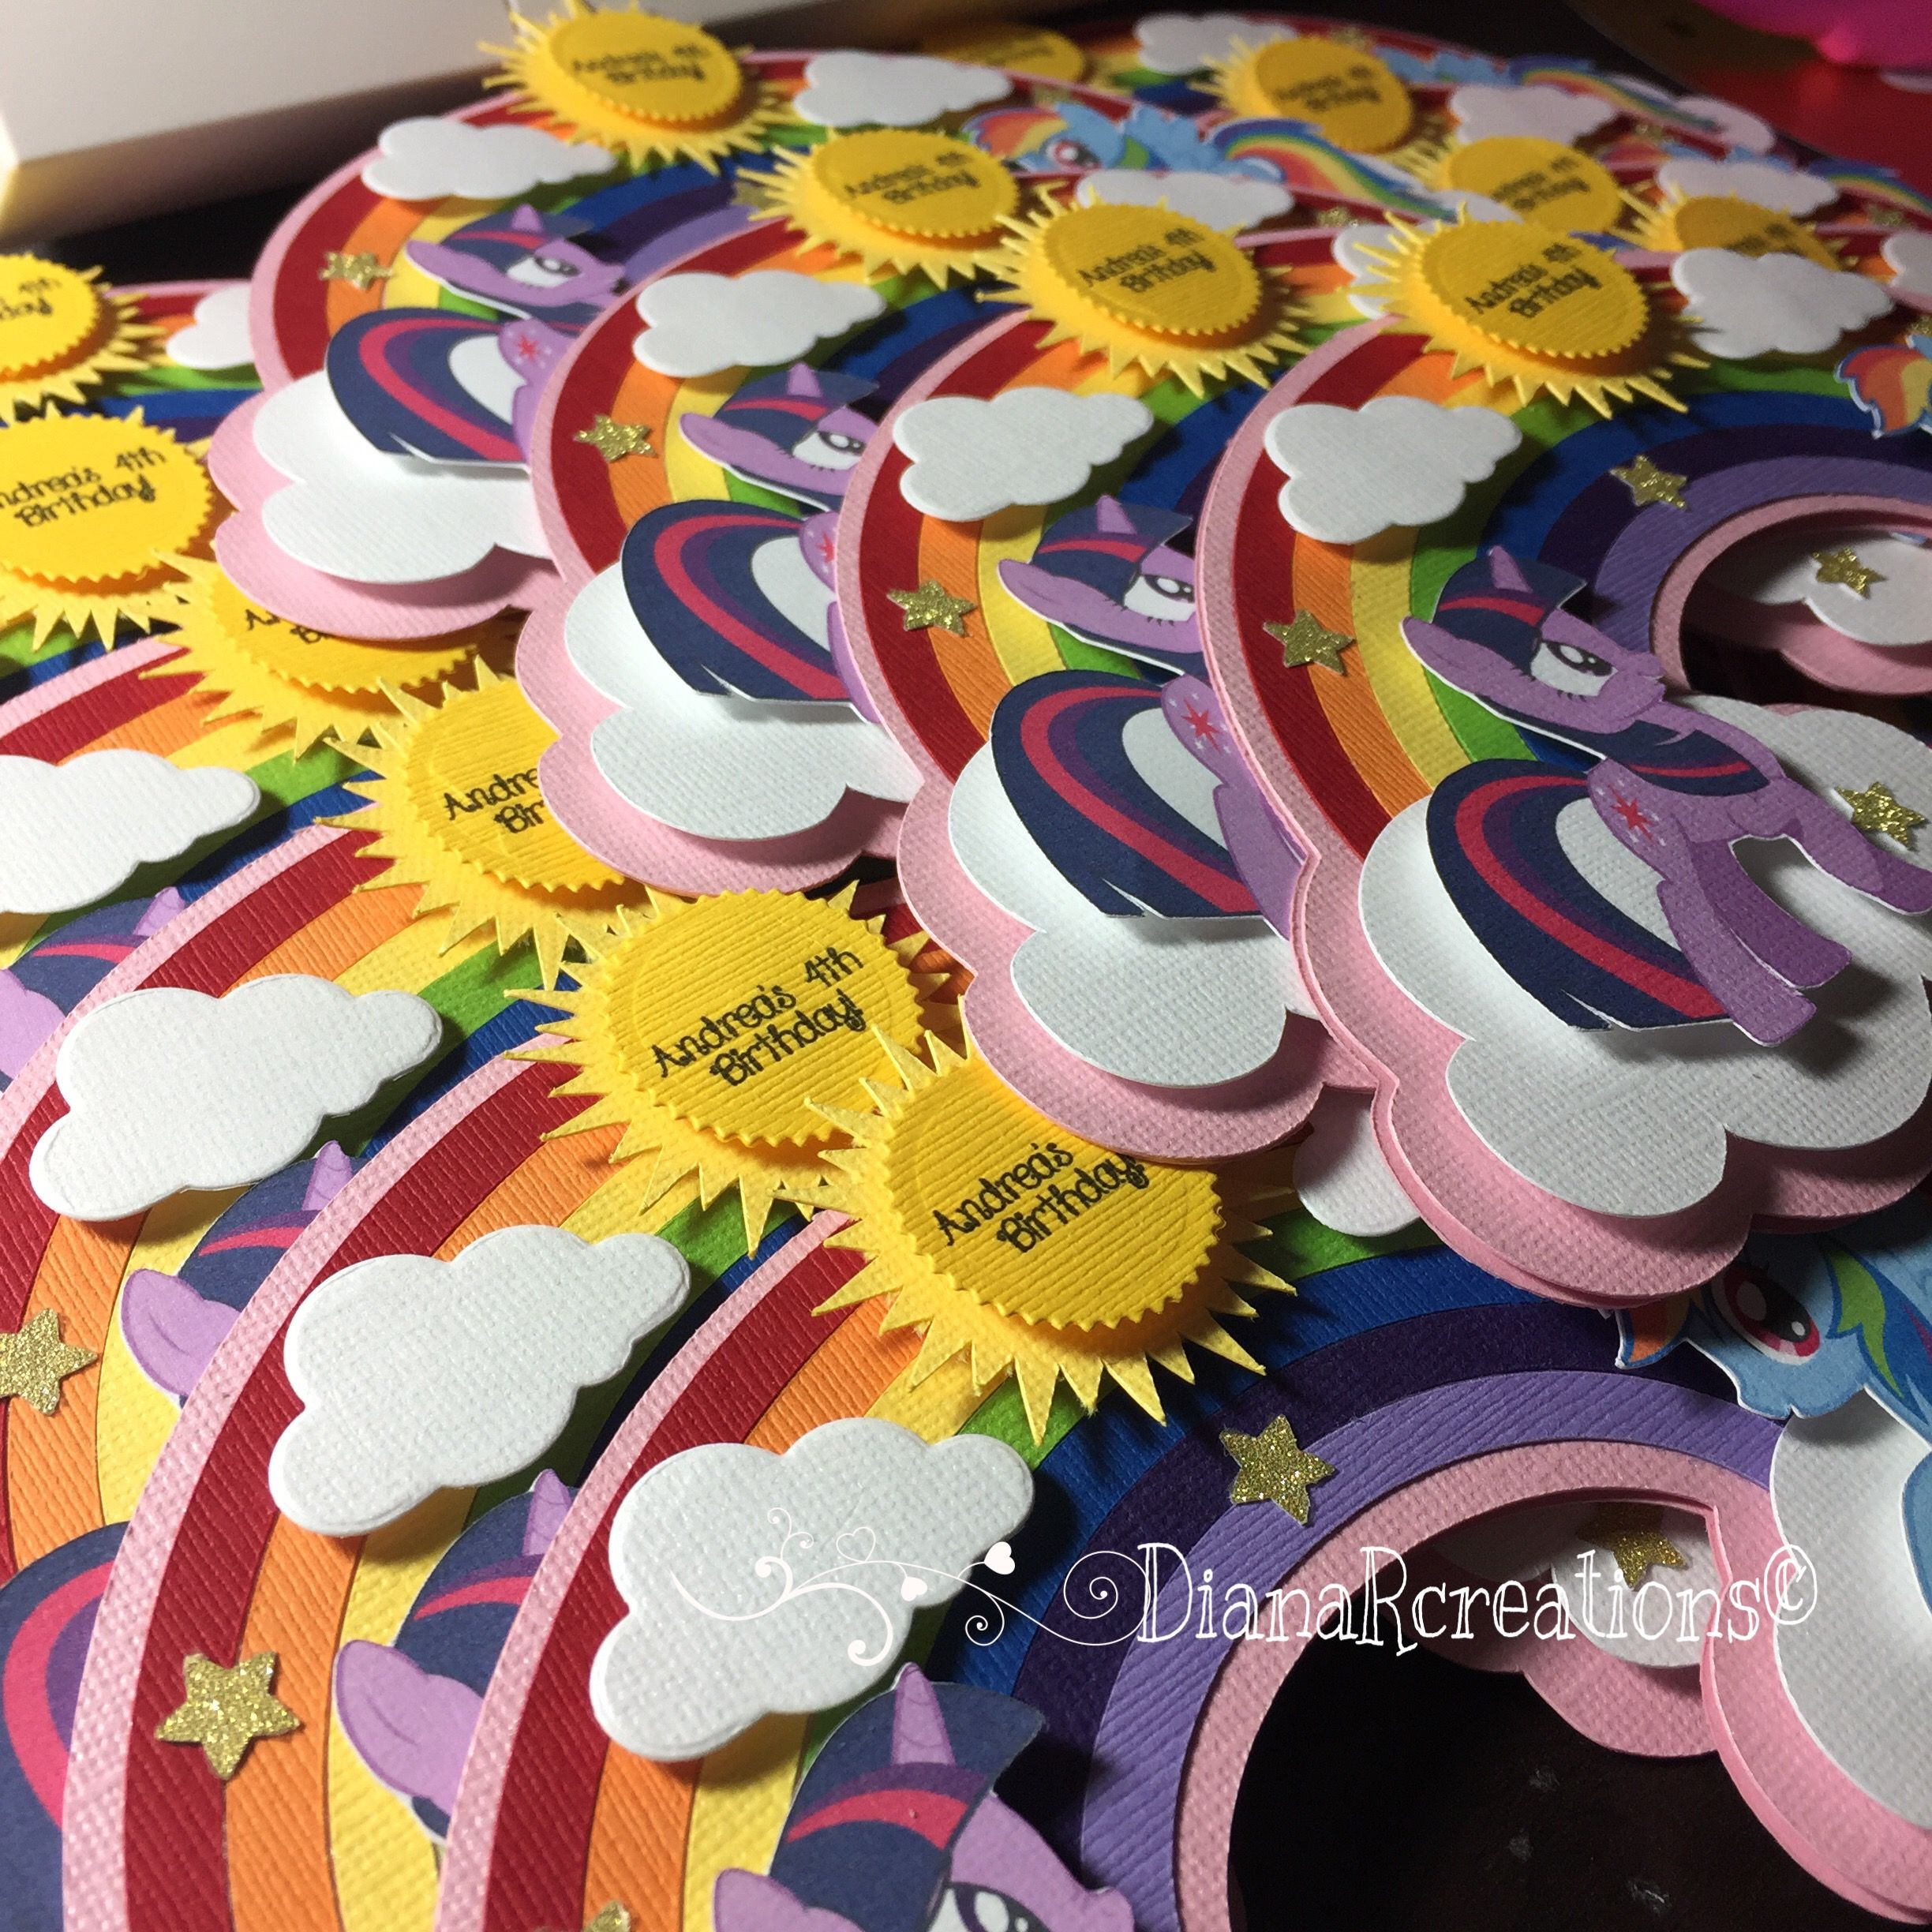 My little pony birthday invitations dianarcreations handmade